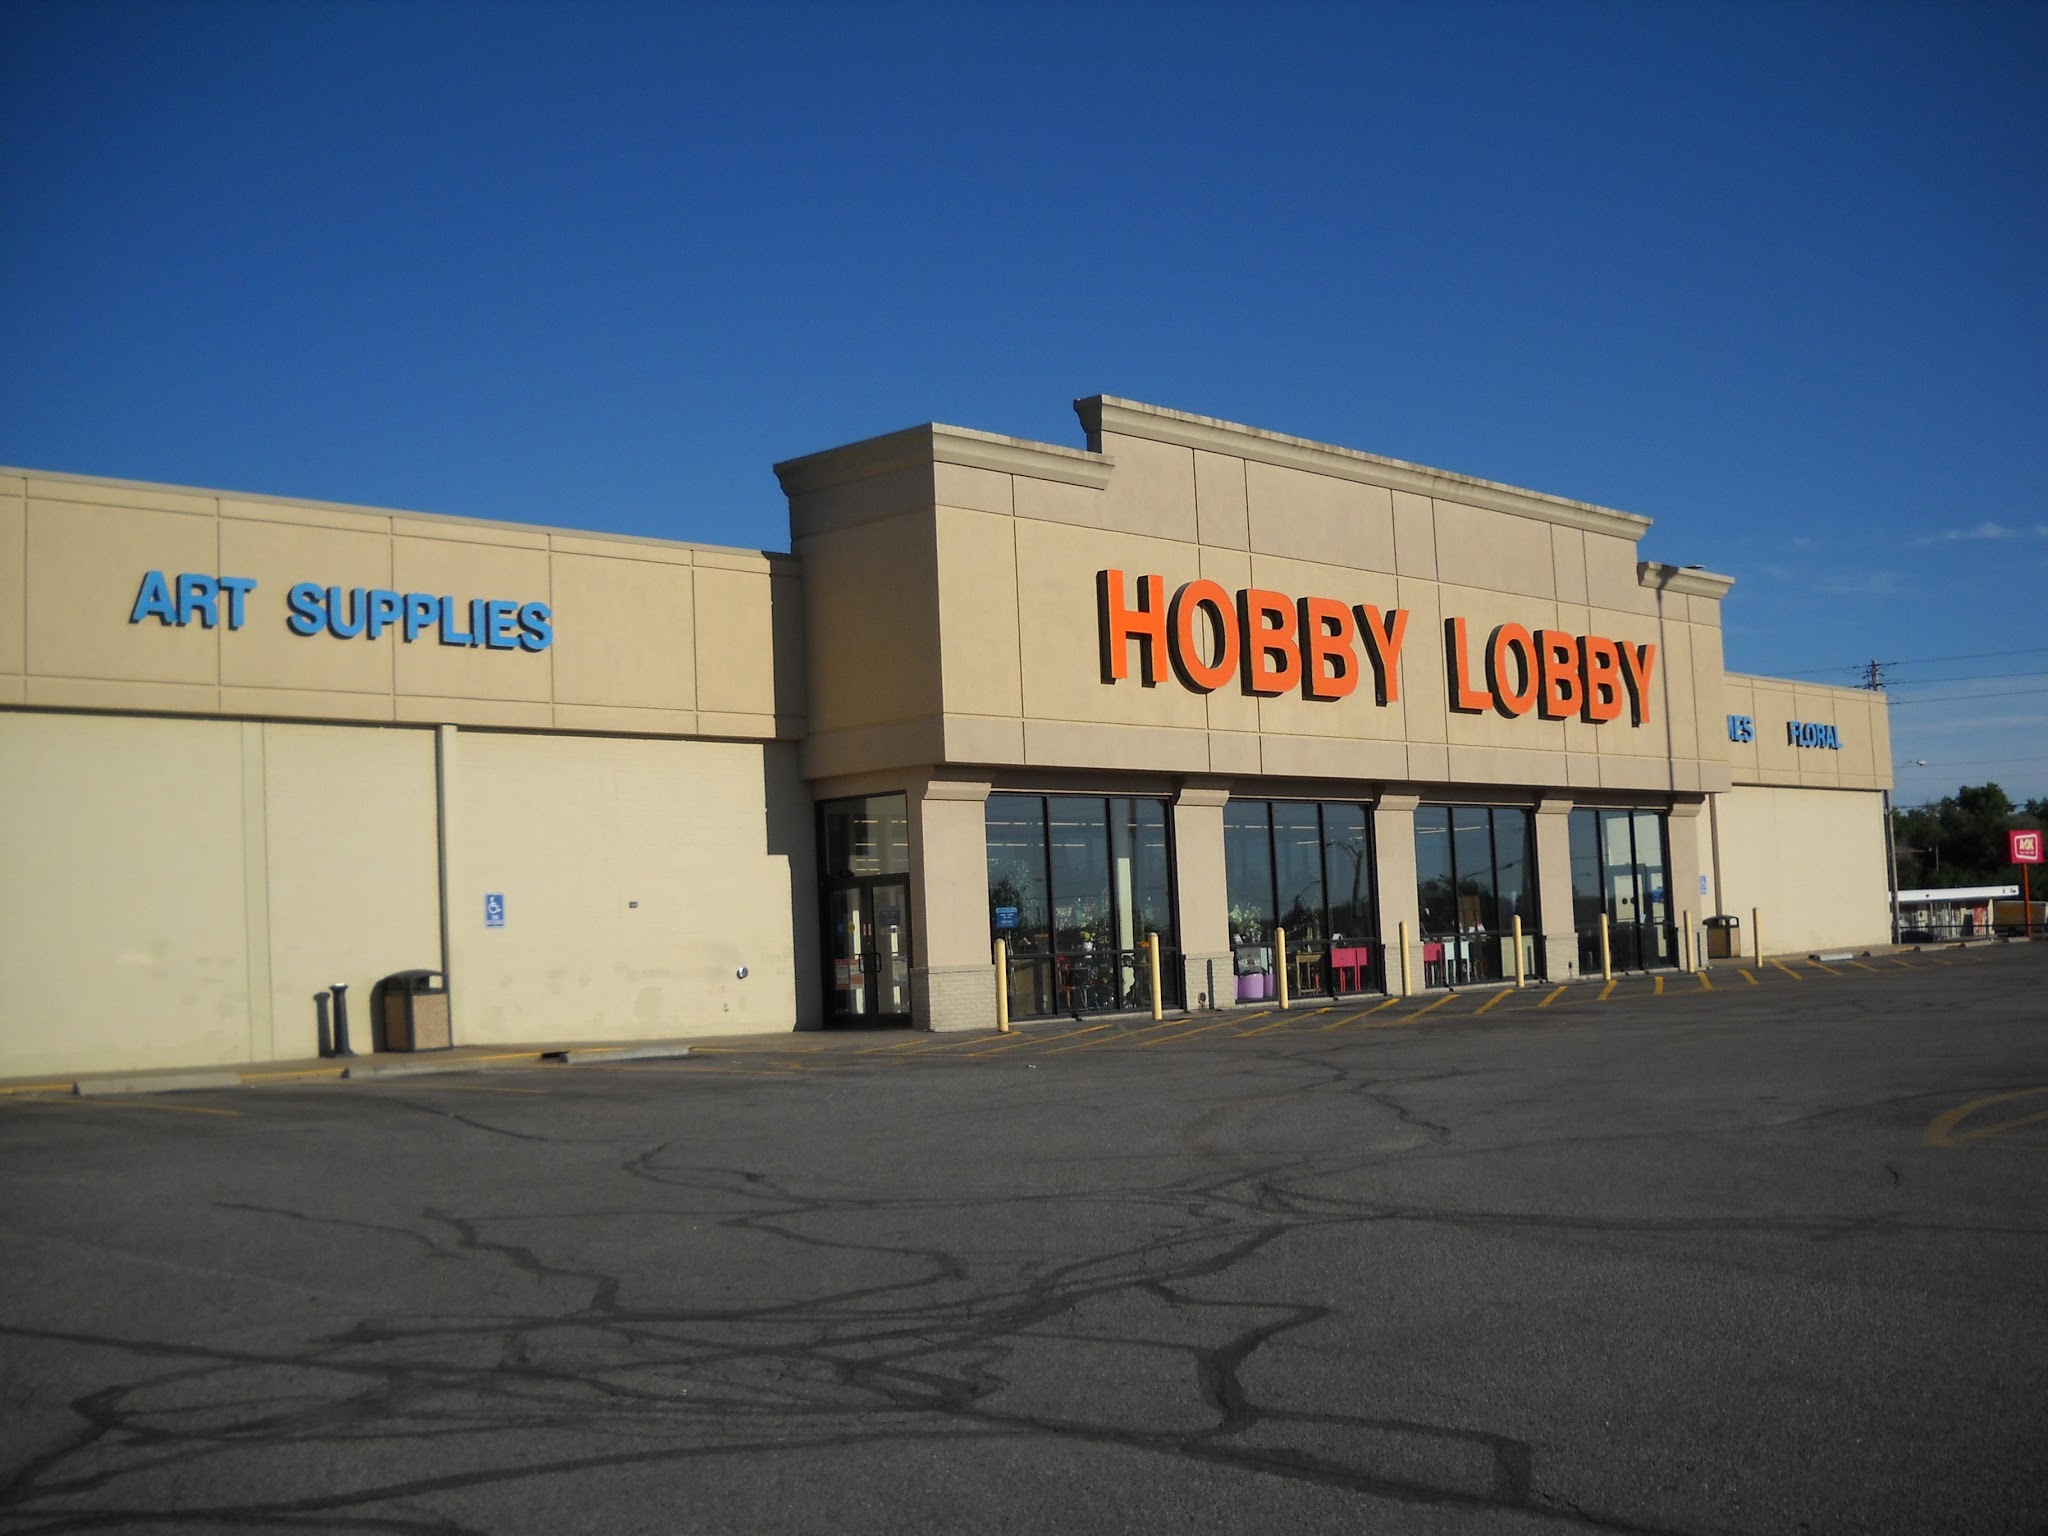 Hobby lobby in wichita ks 67212 for Craft stores wichita ks